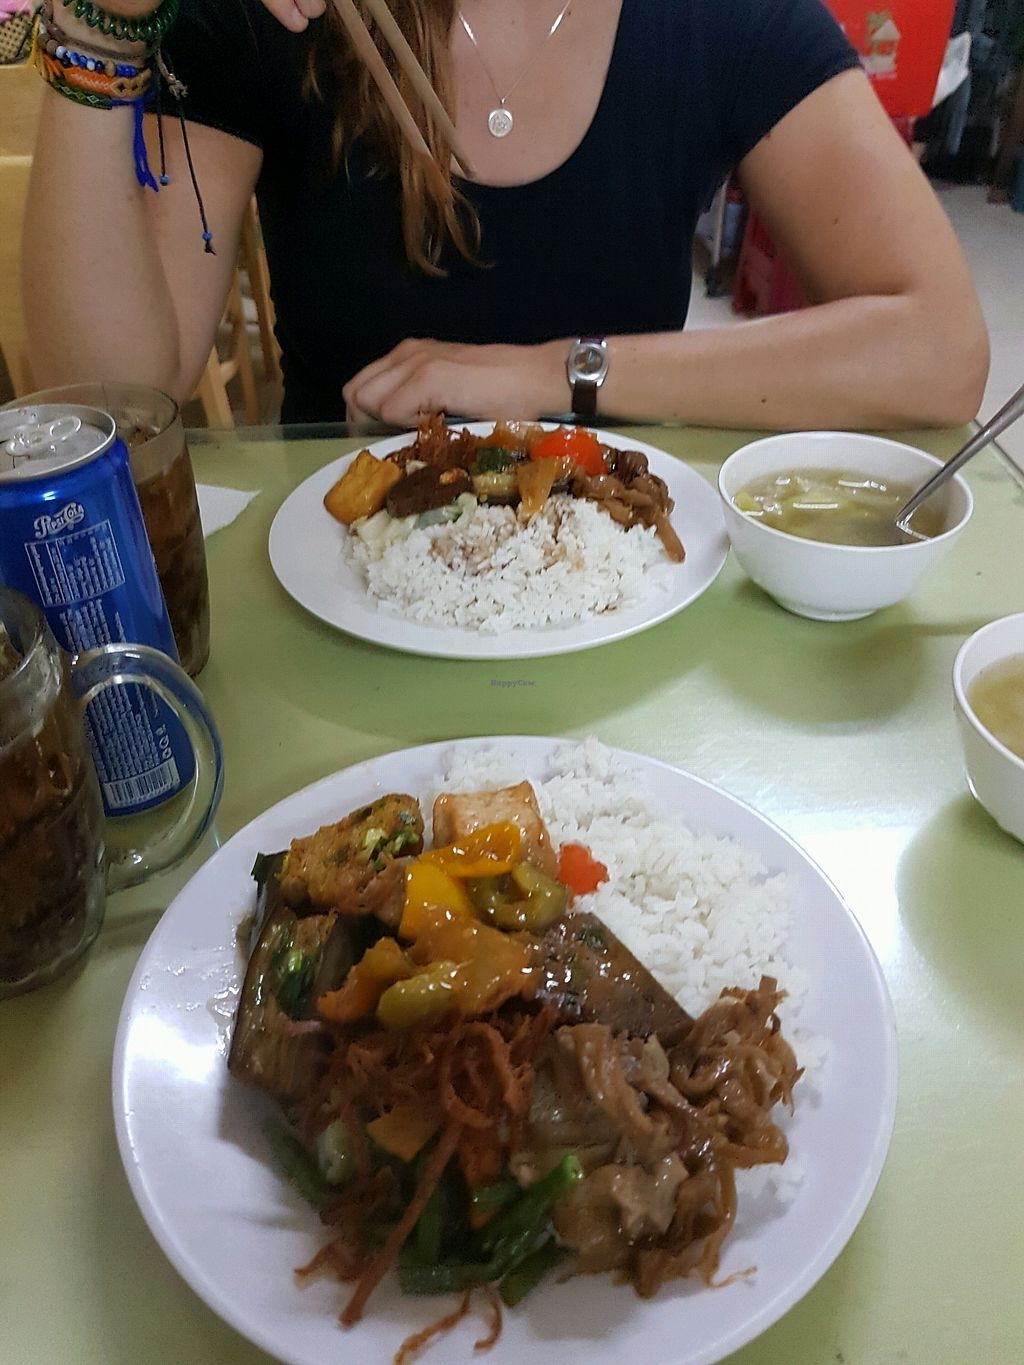 """Photo of Thanh Ai  by <a href=""""/members/profile/chrudy8"""">chrudy8</a> <br/>Rice with vegetables and tofu <br/> November 28, 2017  - <a href='/contact/abuse/image/17475/330005'>Report</a>"""